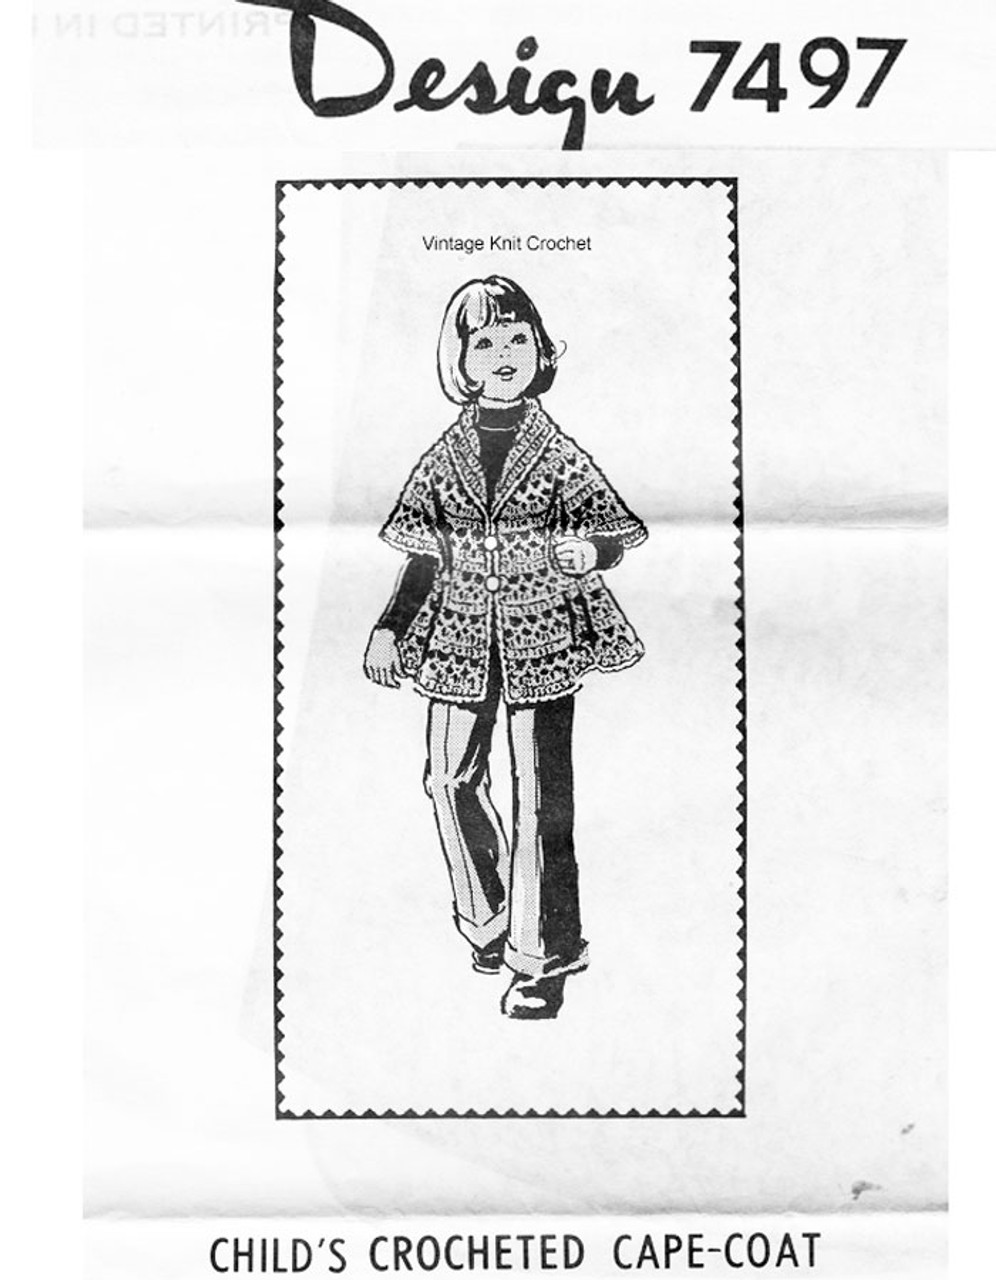 Girls crochet coat pattern, Design 7497